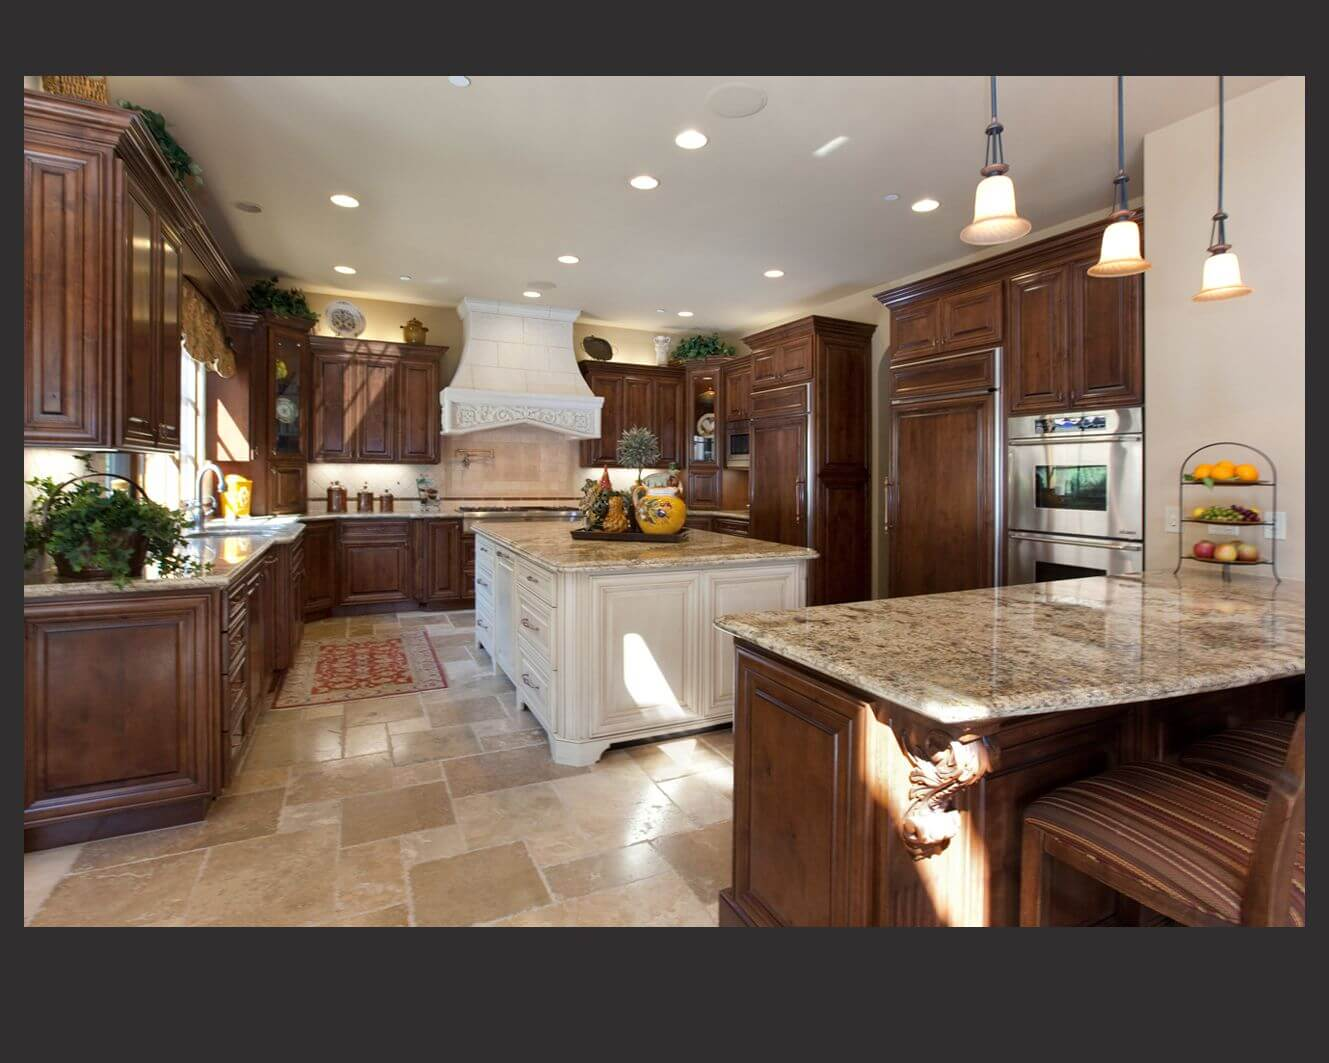 dark kitchen cabinets cabinets for kitchen island Richly detailed U shaped kitchen centers dark wood cabinetry around large white painted wood